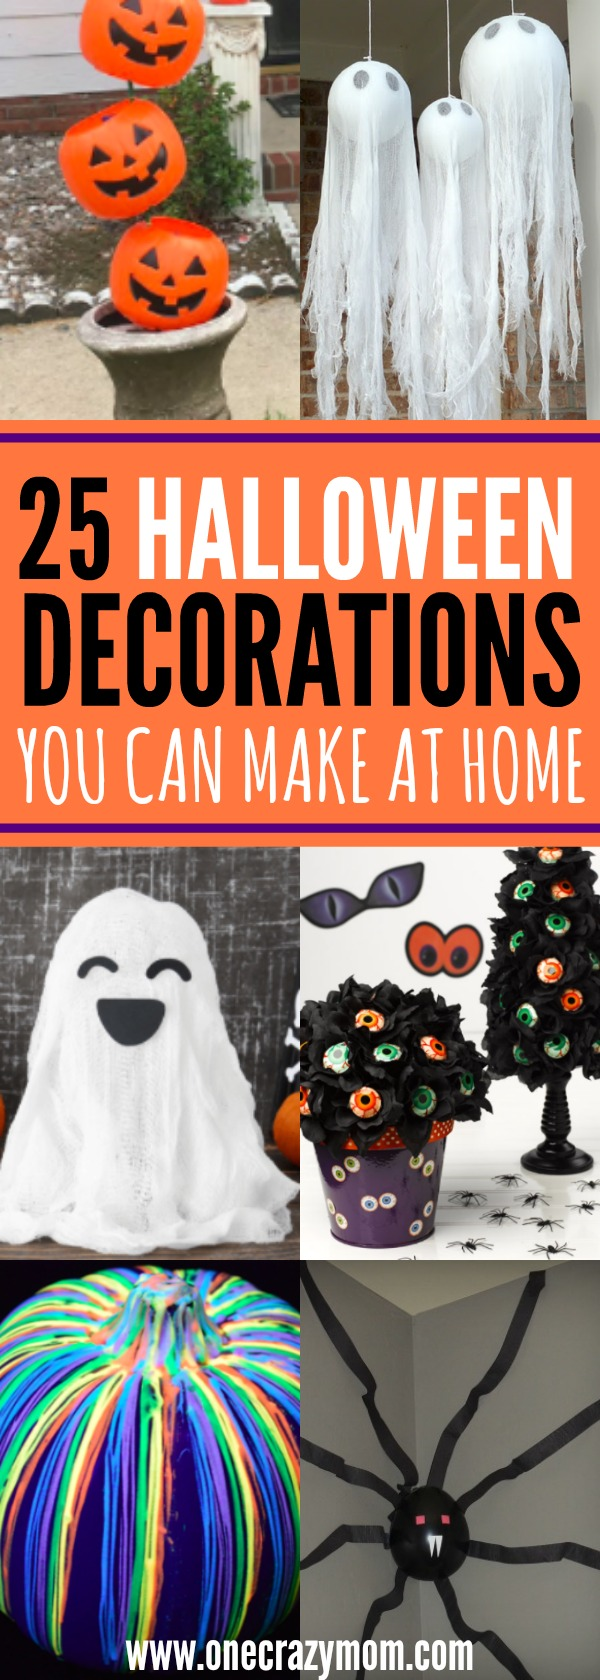 halloween decorations that you can make at home ForHalloween Decorations You Can Make At Home